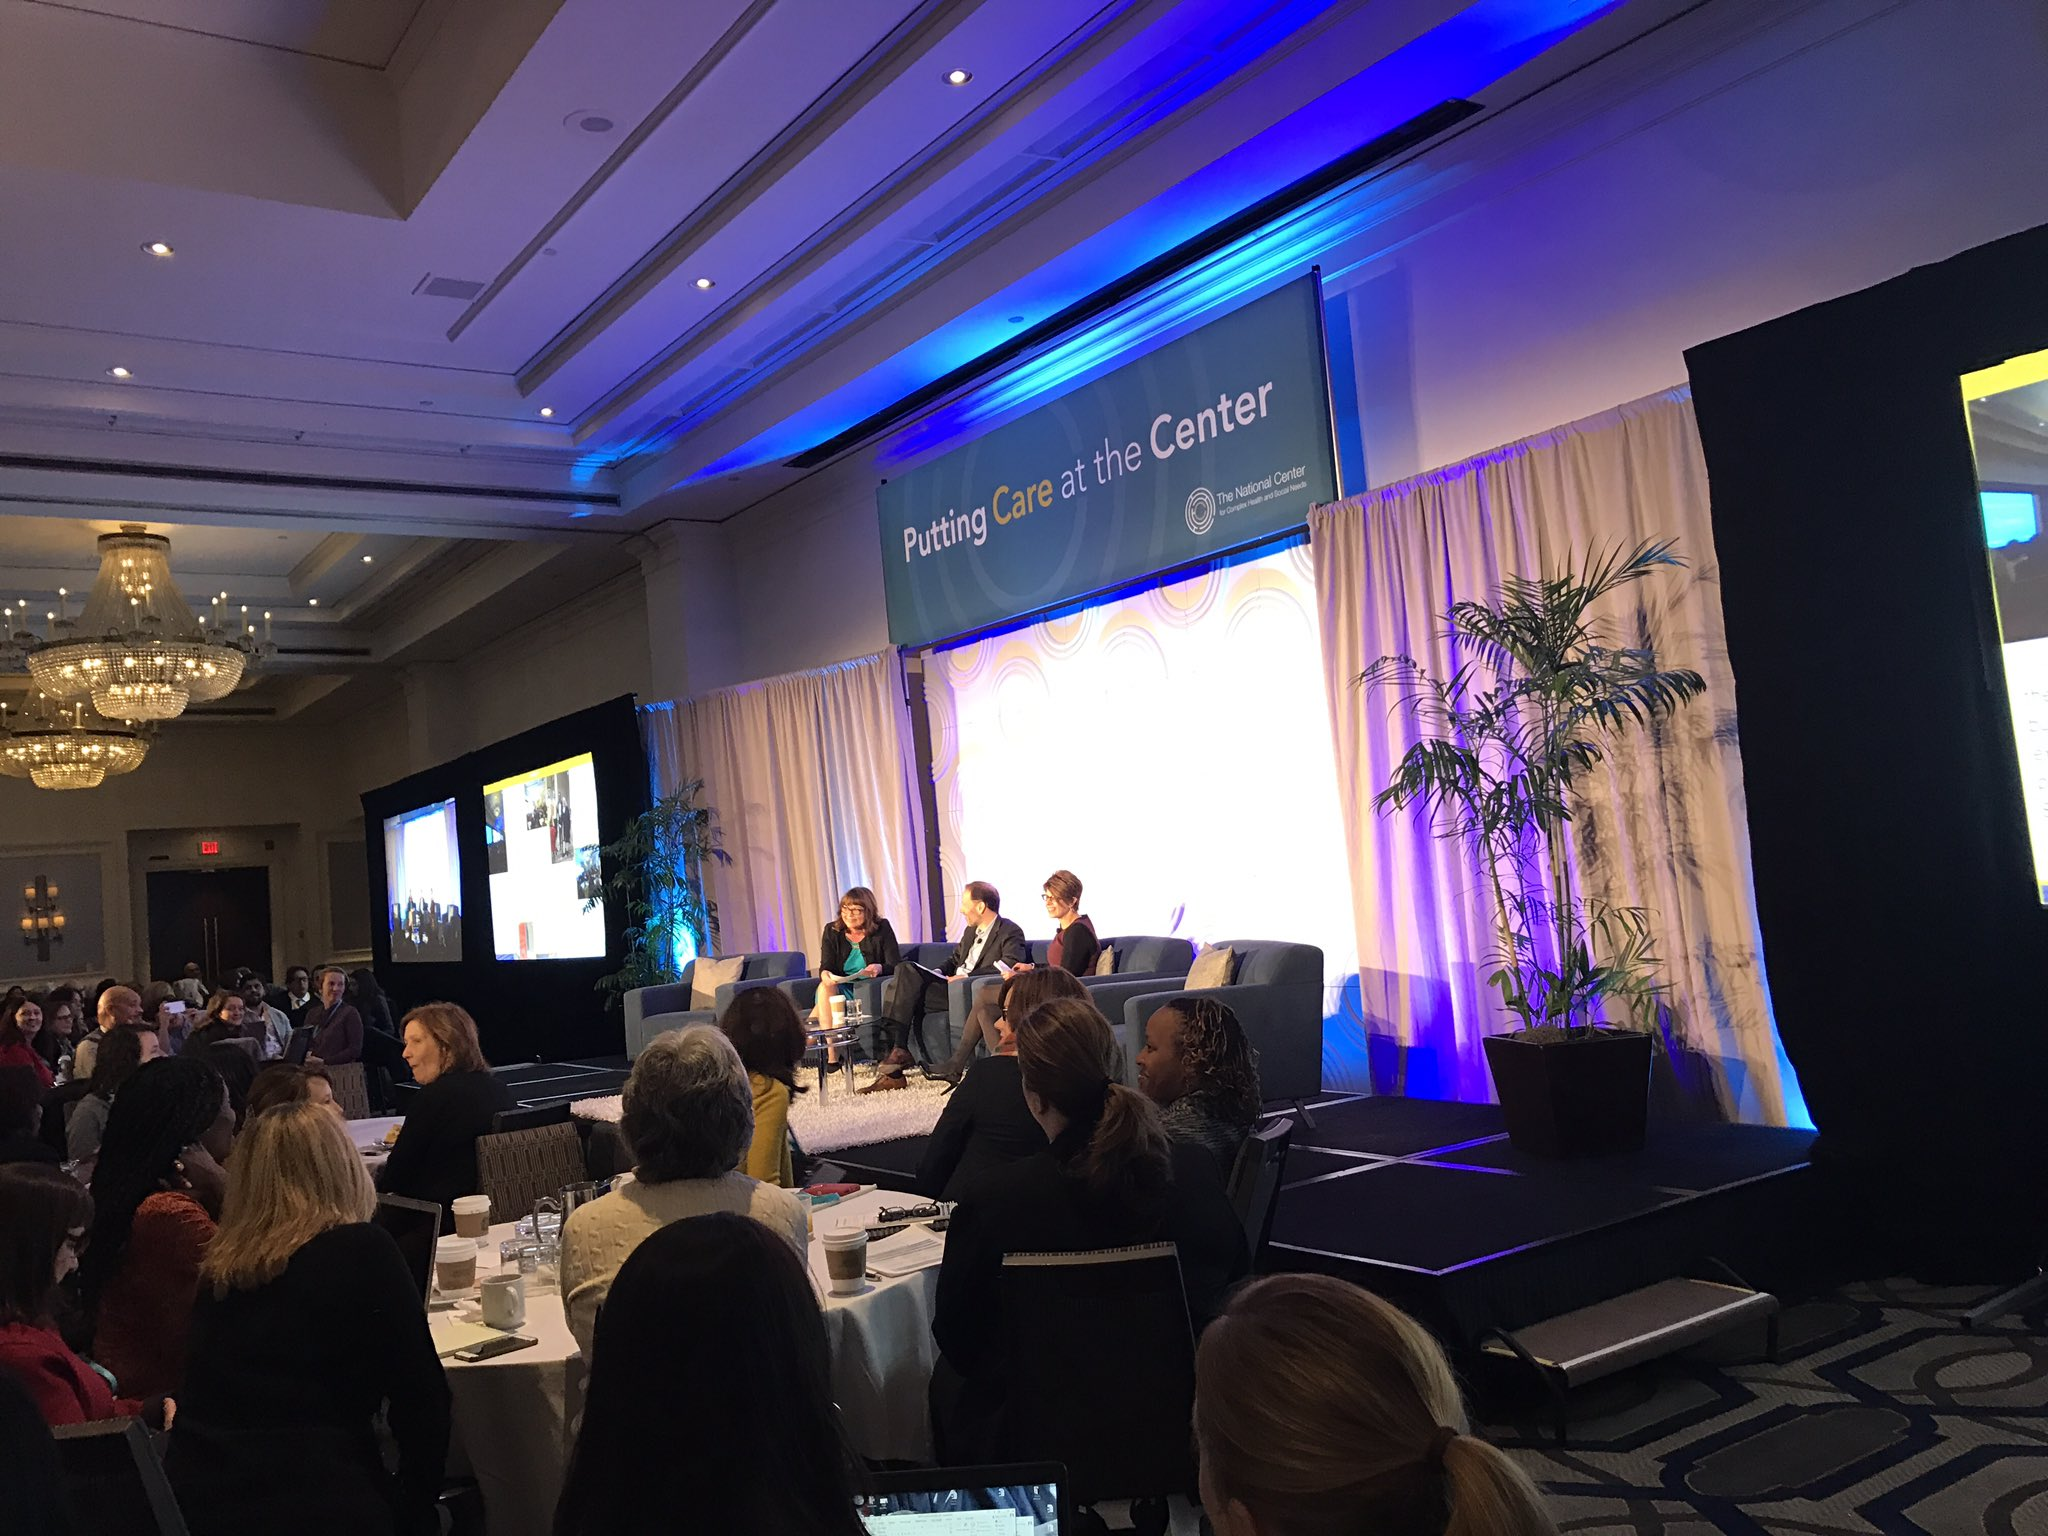 It's like Woodstock for social medicine at inaugural conference of the National Center for Complex Health and Social Needs #CenteringCare https://t.co/8kG6mKsvyr